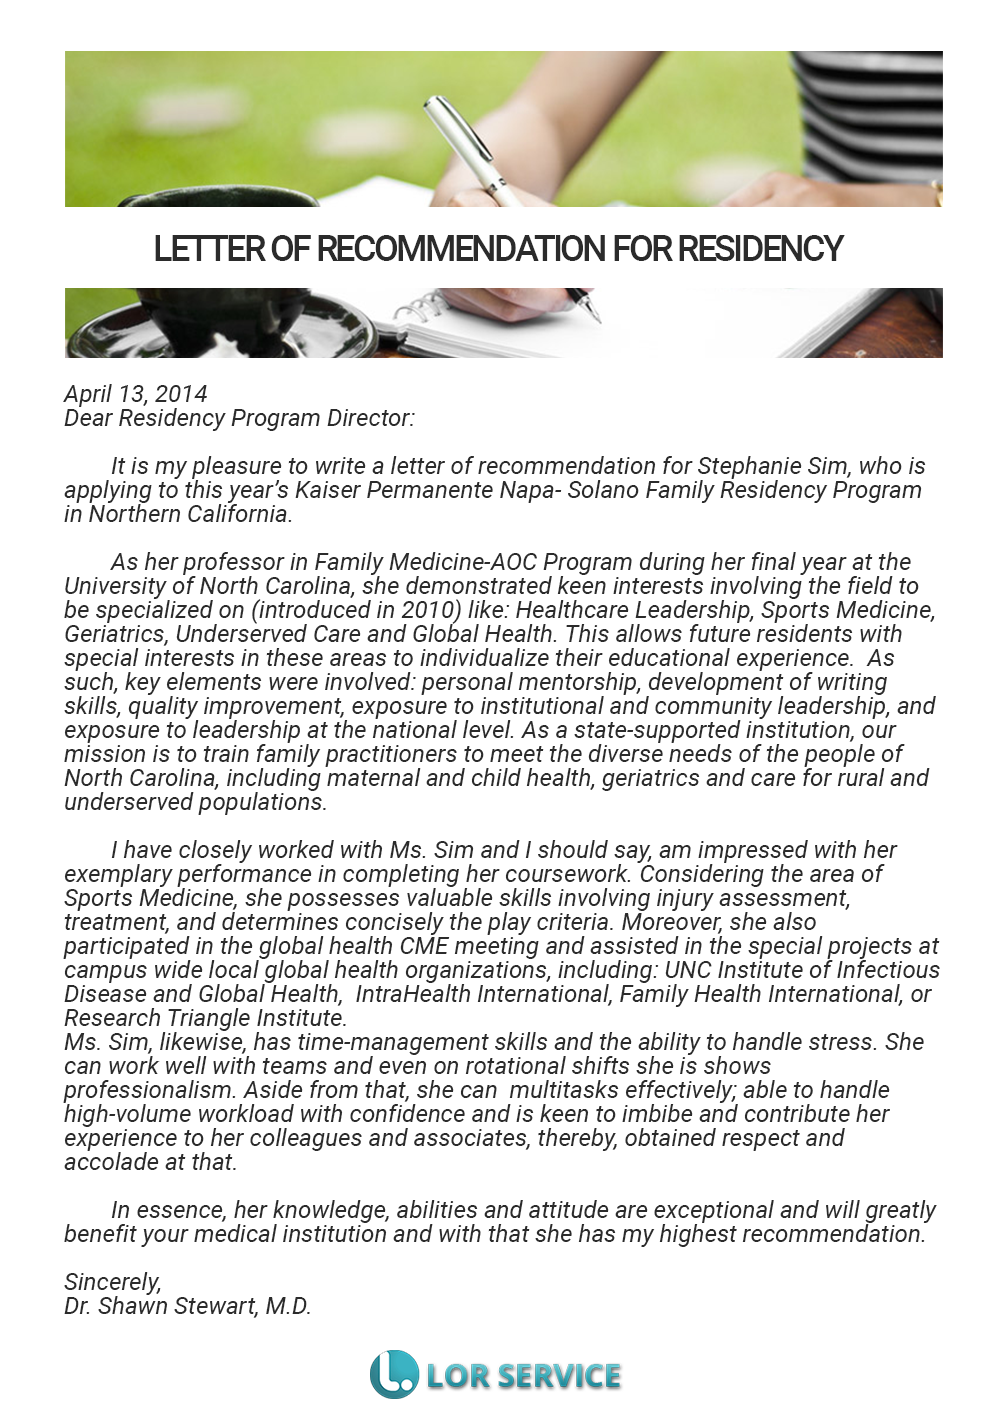 How to write letter of recommendation for residency sample residency letter of recommendation altavistaventures Gallery